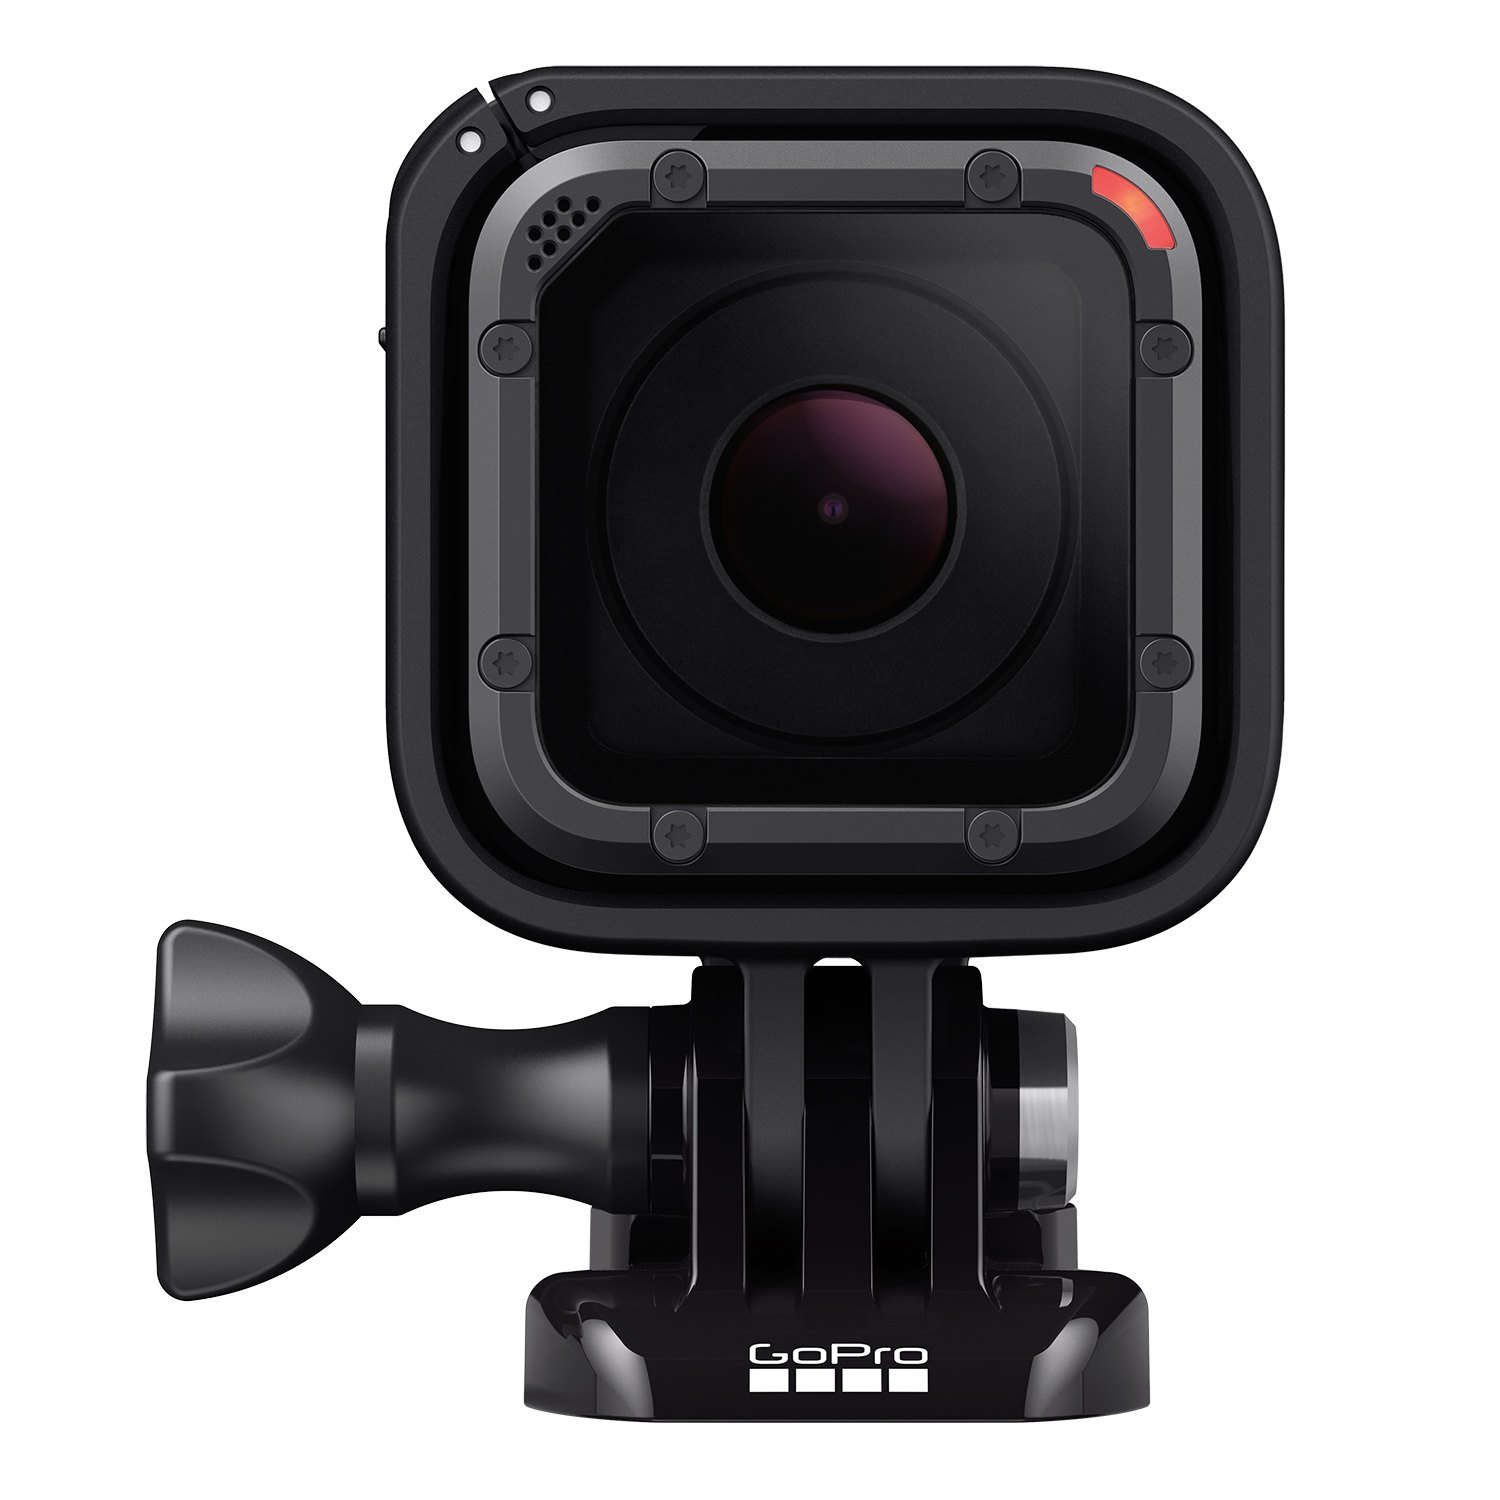 Gopro Announces The Hero 5 Black And Session Verge Hero5 Edition Go Pro